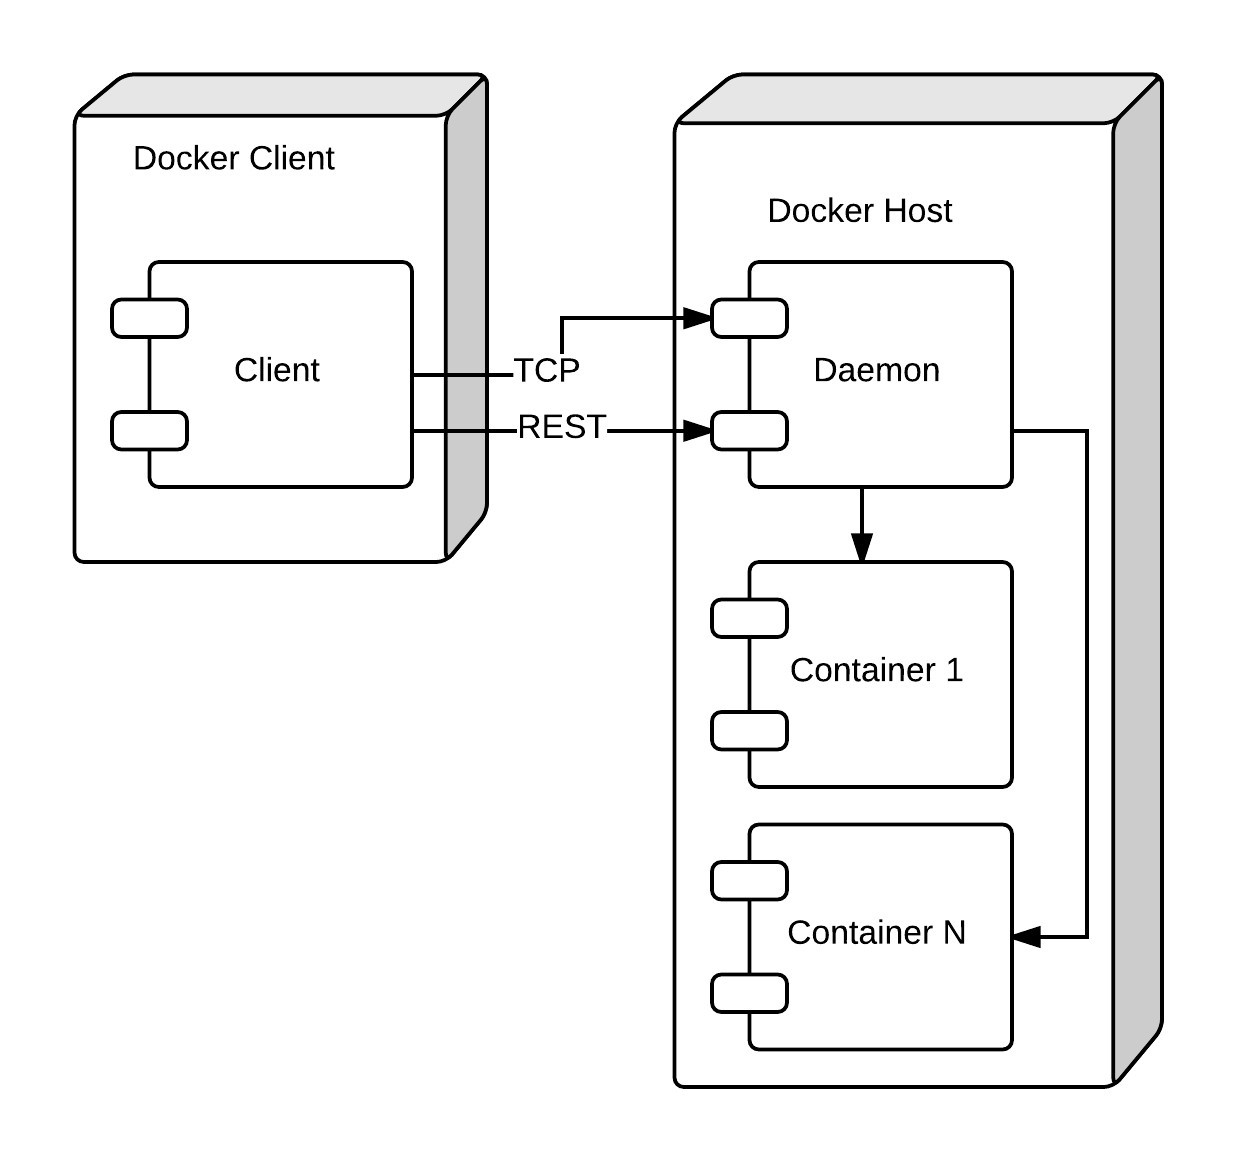 Communication between Docker client and Docker daemin via TCP sockers